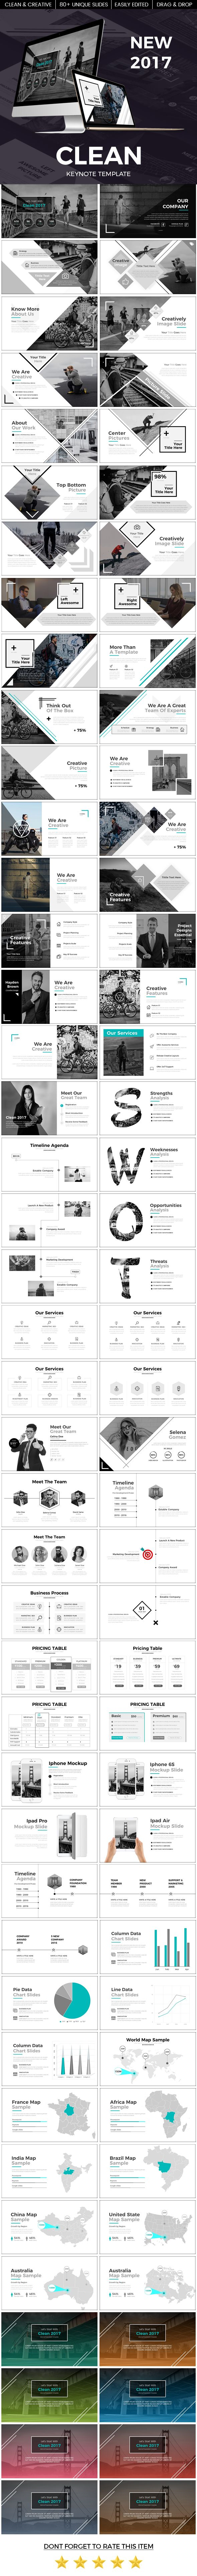 Clean 2017 - Keynote Template